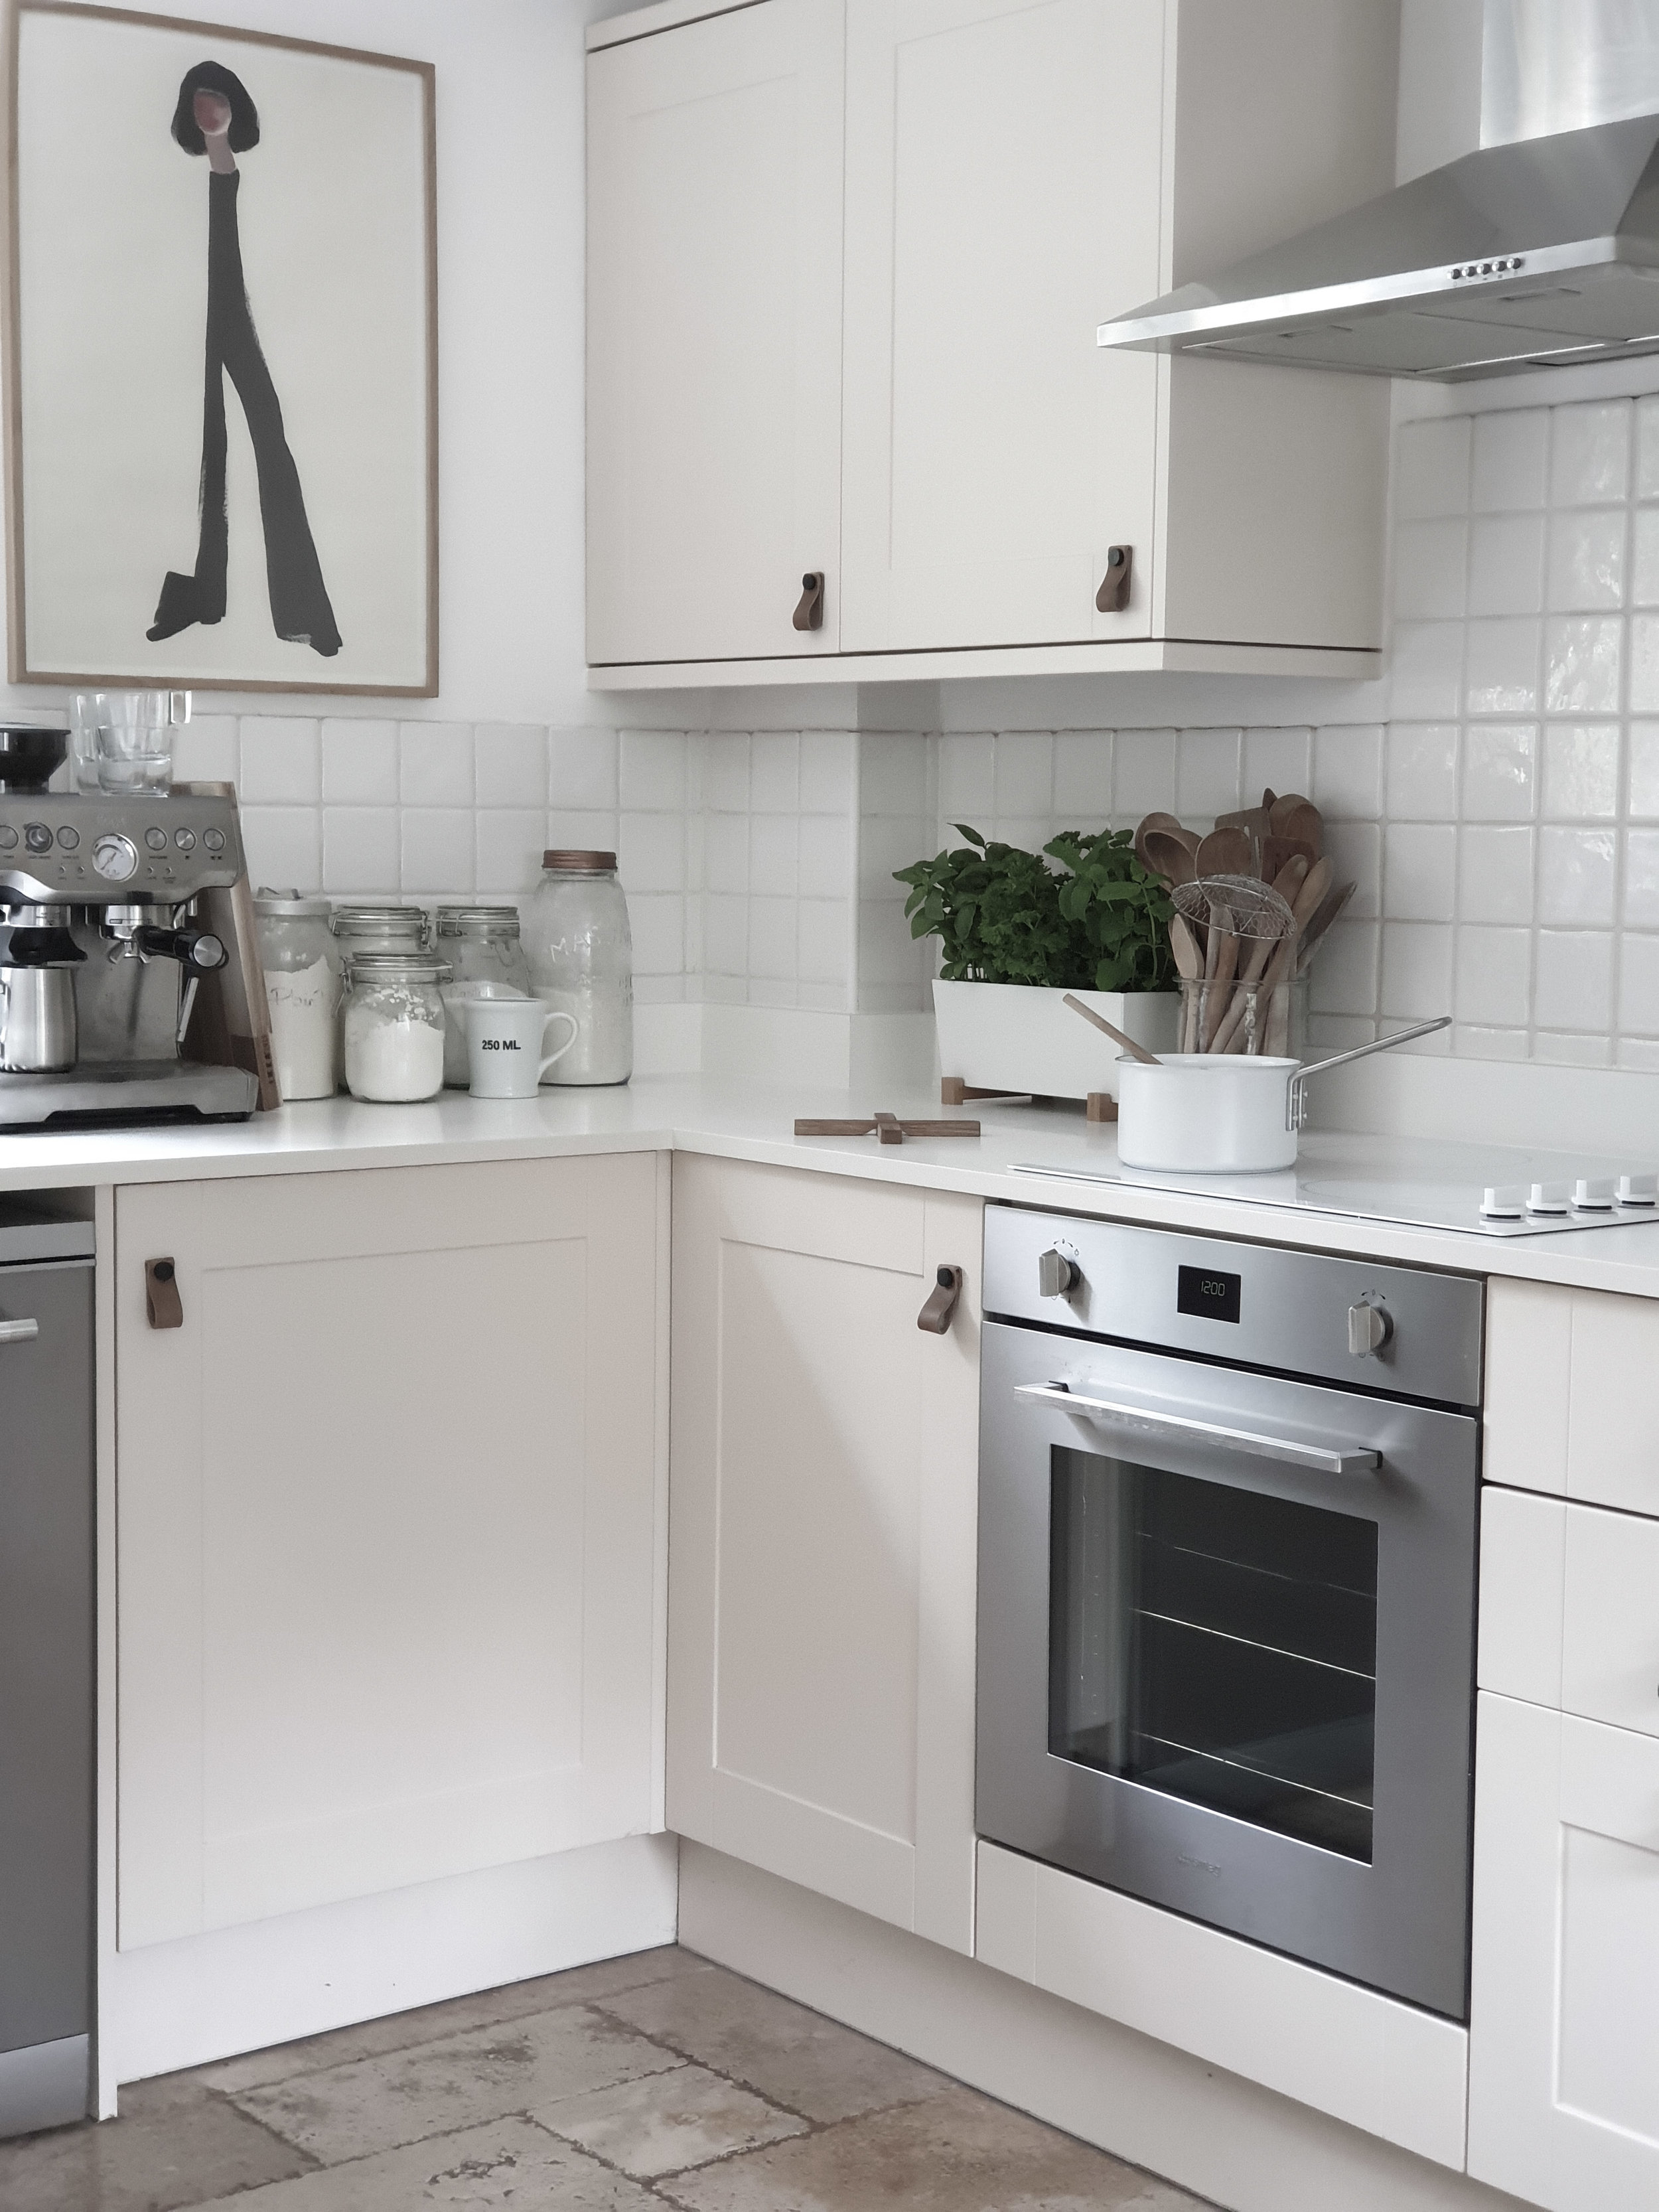 A stainless steel hob would have broken the seamless lines of the white work surface so I chose a white hob and a stainless steel oven to match the dishwasher and eventually the fridge.